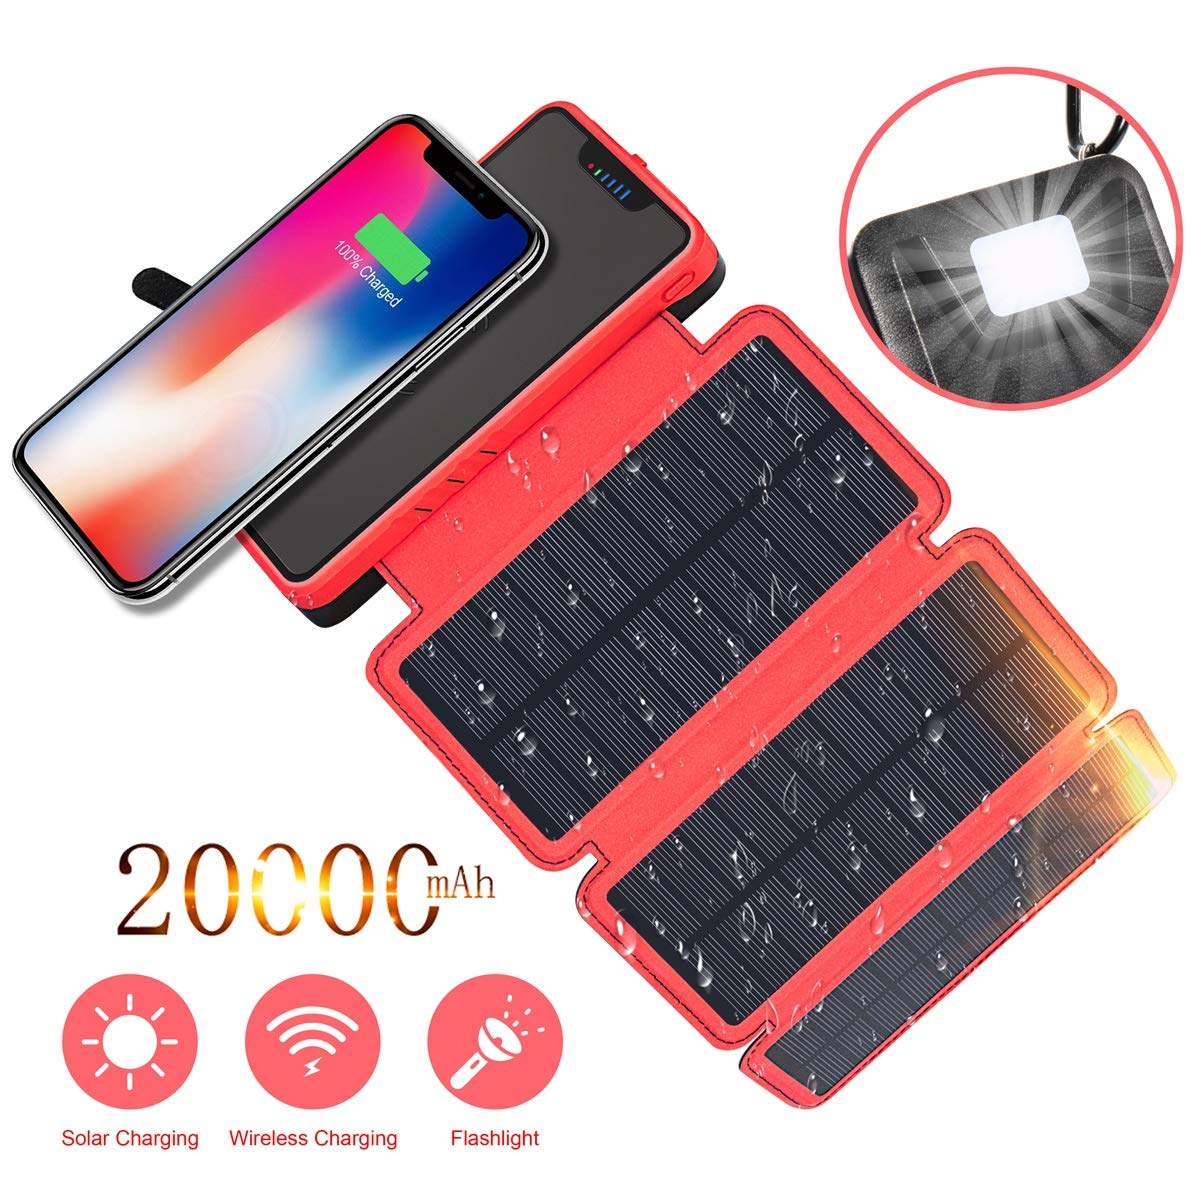 Solar Charger, Soluser 20000mAh Wireless Solar Power Bank Waterproof External Battery Pack with 3 Solar Panels, Dual 2.1A Port, Emergency Flashlight, Portable Phone Charger for Smartphones